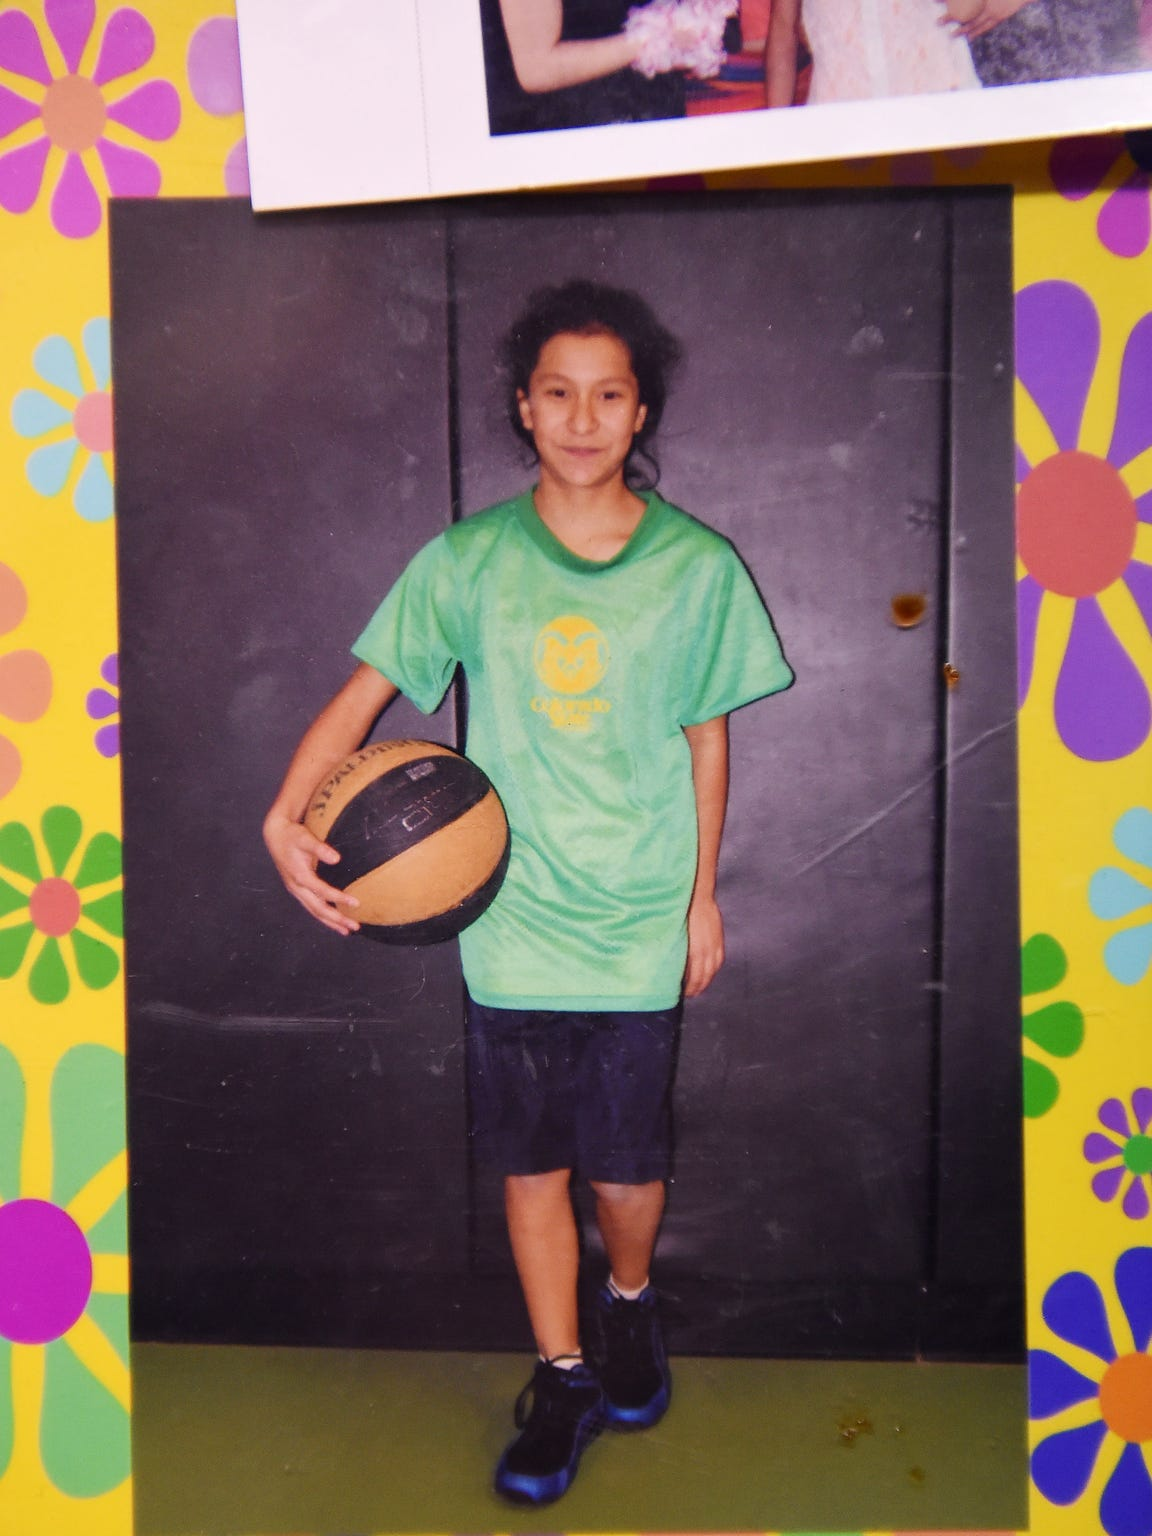 Ariana poses with a basketball in 2013 at Riffenburgh Elementary School.